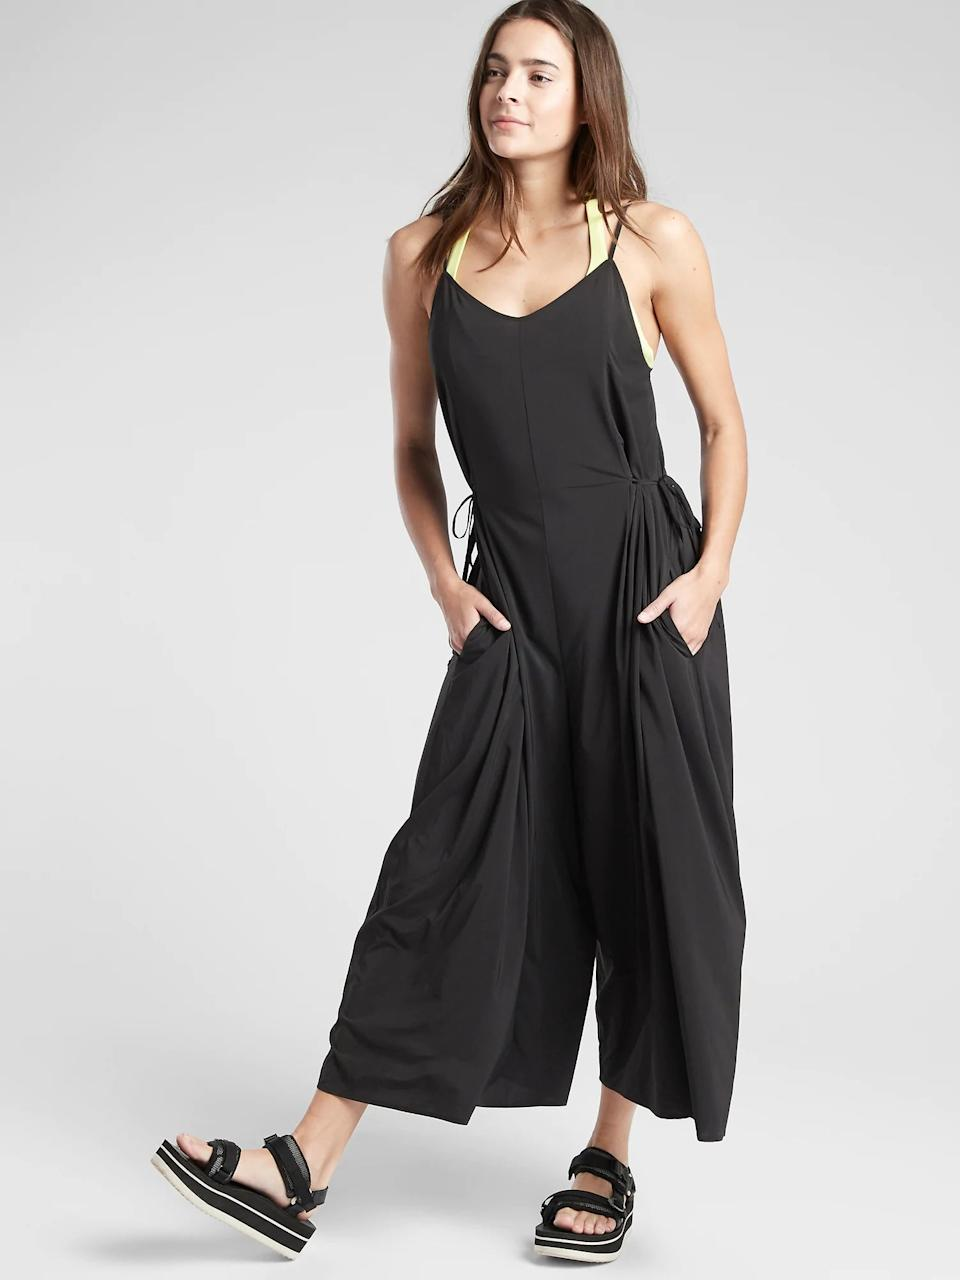 """<h3><a href=""""https://athleta.gap.com/browse/category.do?cid=1026746&nav=meganav%3ASALE%3AFEATURED%20SHOPS%3ANew%20Markdowns"""" rel=""""nofollow noopener"""" target=""""_blank"""" data-ylk=""""slk:Athleta"""" class=""""link rapid-noclick-resp"""">Athleta</a></h3><br><strong>Dates: </strong>Limited time<br><strong>Sale: </strong><a href=""""https://athleta.gap.com/browse/category.do?cid=1026746&nav=meganav:SALE:FEATURED%20SHOPS:New%20Markdowns"""" rel=""""nofollow noopener"""" target=""""_blank"""" data-ylk=""""slk:New markdowns"""" class=""""link rapid-noclick-resp"""">New markdowns</a><br><strong>Promo Code: </strong>None<br><br>We came for the top-rated face masks, but stayed for the activewear brand's wearable range of sporty, easy separates, <a href=""""https://athleta.gap.com/browse/category.do?cid=1026746&nav=meganav:SALE:FEATURED%20SHOPS:New%20Markdowns"""" rel=""""nofollow noopener"""" target=""""_blank"""" data-ylk=""""slk:newly marked down"""" class=""""link rapid-noclick-resp"""">newly marked down</a> (and not likely to stay in stock for long).<br><br><br><br><strong>Athleta</strong> Sayulita Jumpsuit, $, available at <a href=""""https://go.skimresources.com/?id=30283X879131&url=https%3A%2F%2Fathleta.gap.com%2Fbrowse%2Fproduct.do%3Fpid%3D446865022%26cid%3D1148297%26pcid%3D1148297%23pdp-page-content"""" rel=""""nofollow noopener"""" target=""""_blank"""" data-ylk=""""slk:Athleta"""" class=""""link rapid-noclick-resp"""">Athleta</a>"""